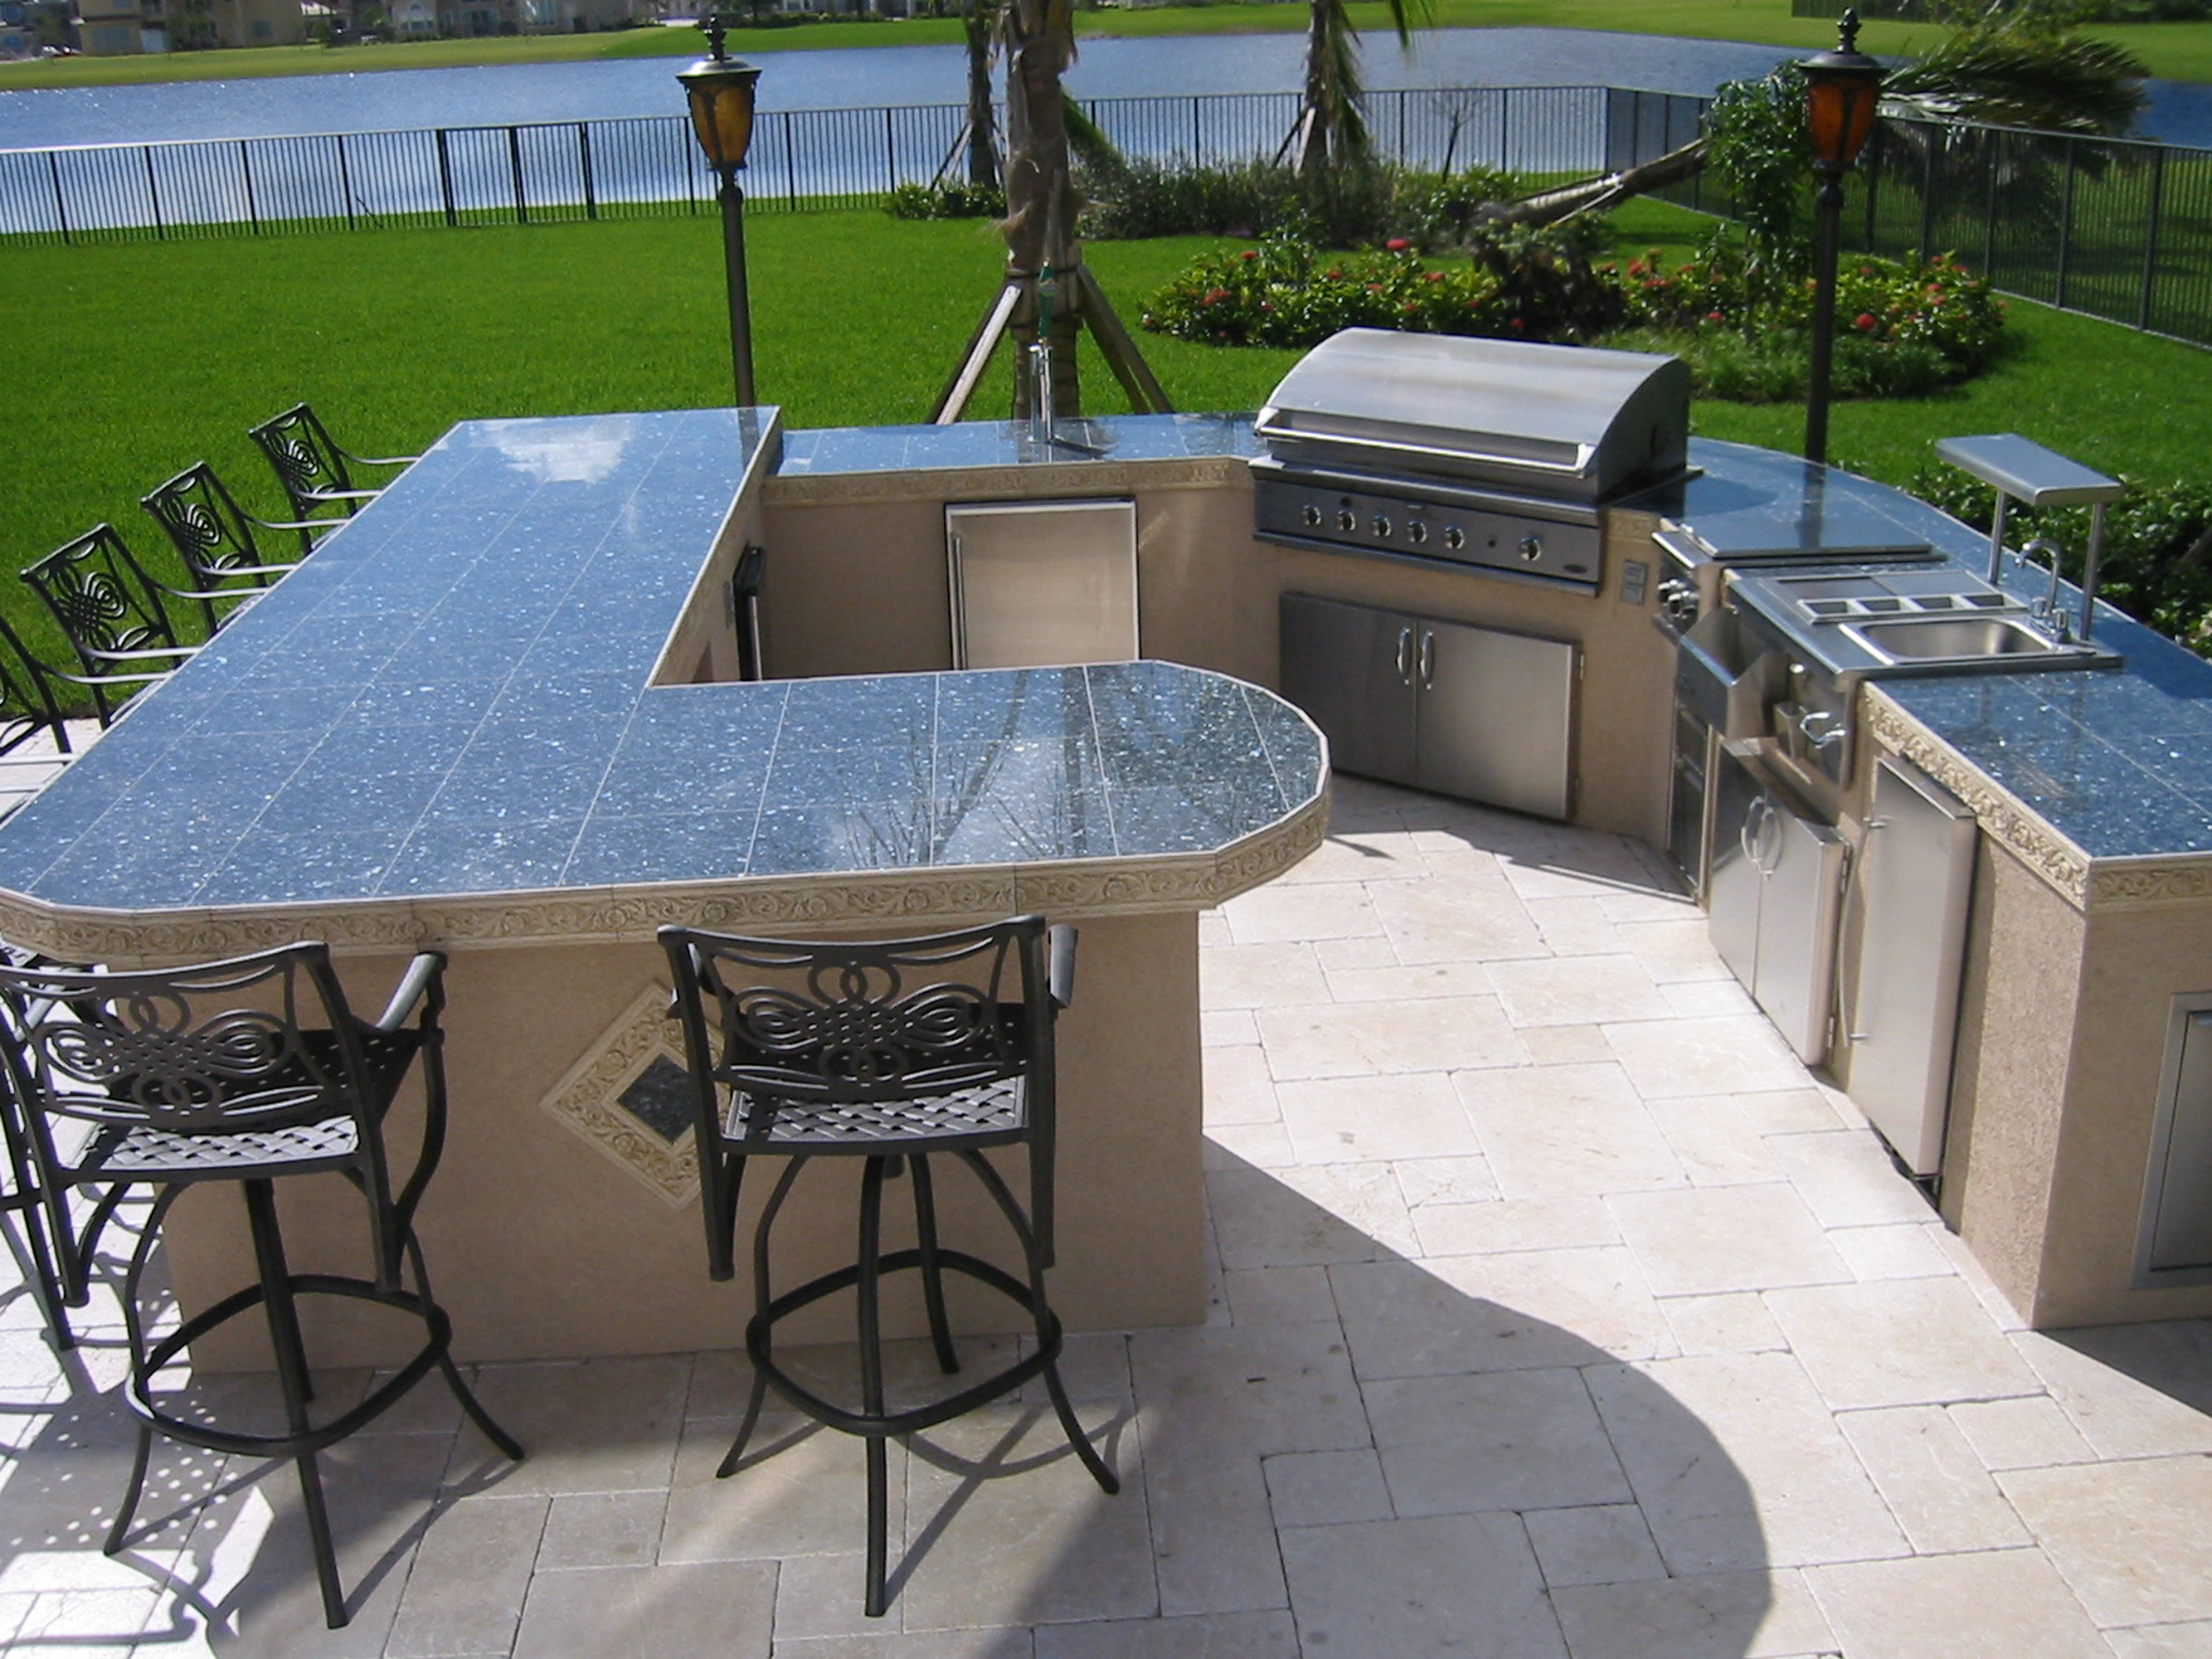 Backyard Bar And Grill : Huge! custom outdoor kitchen with built in dcs gas bbq grill and keg